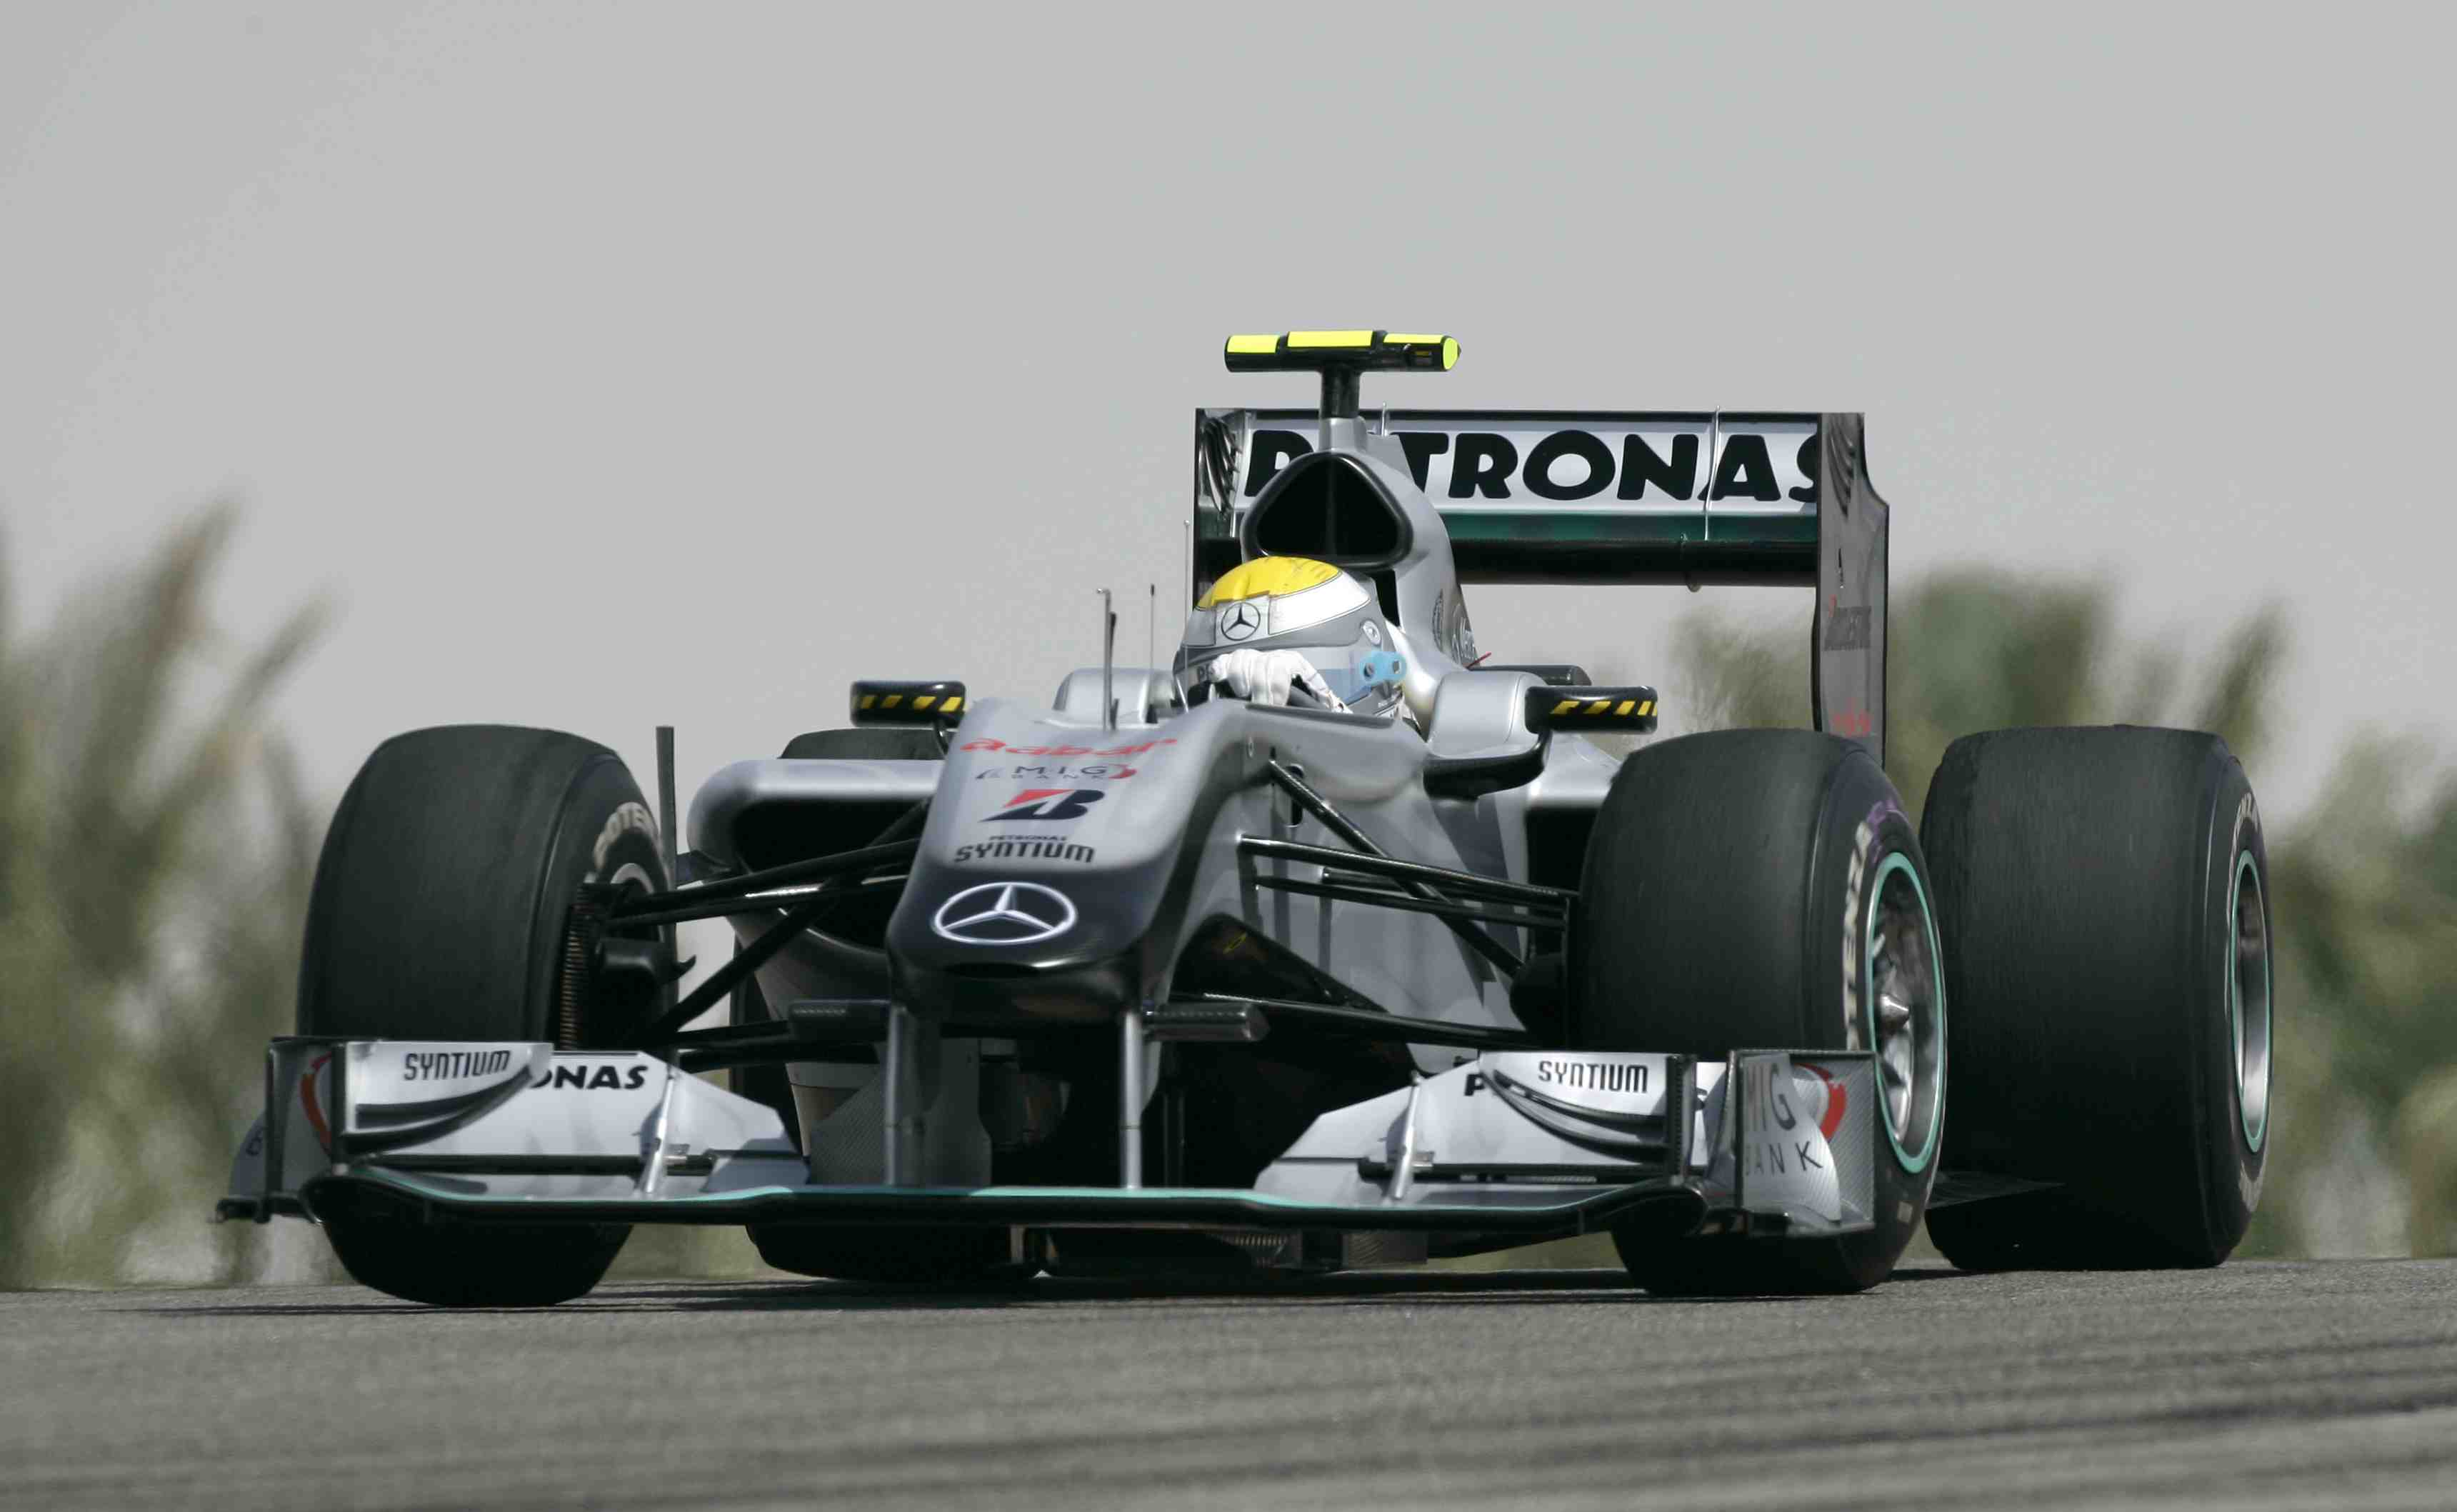 Rosberg fastest in first day at Bahrain